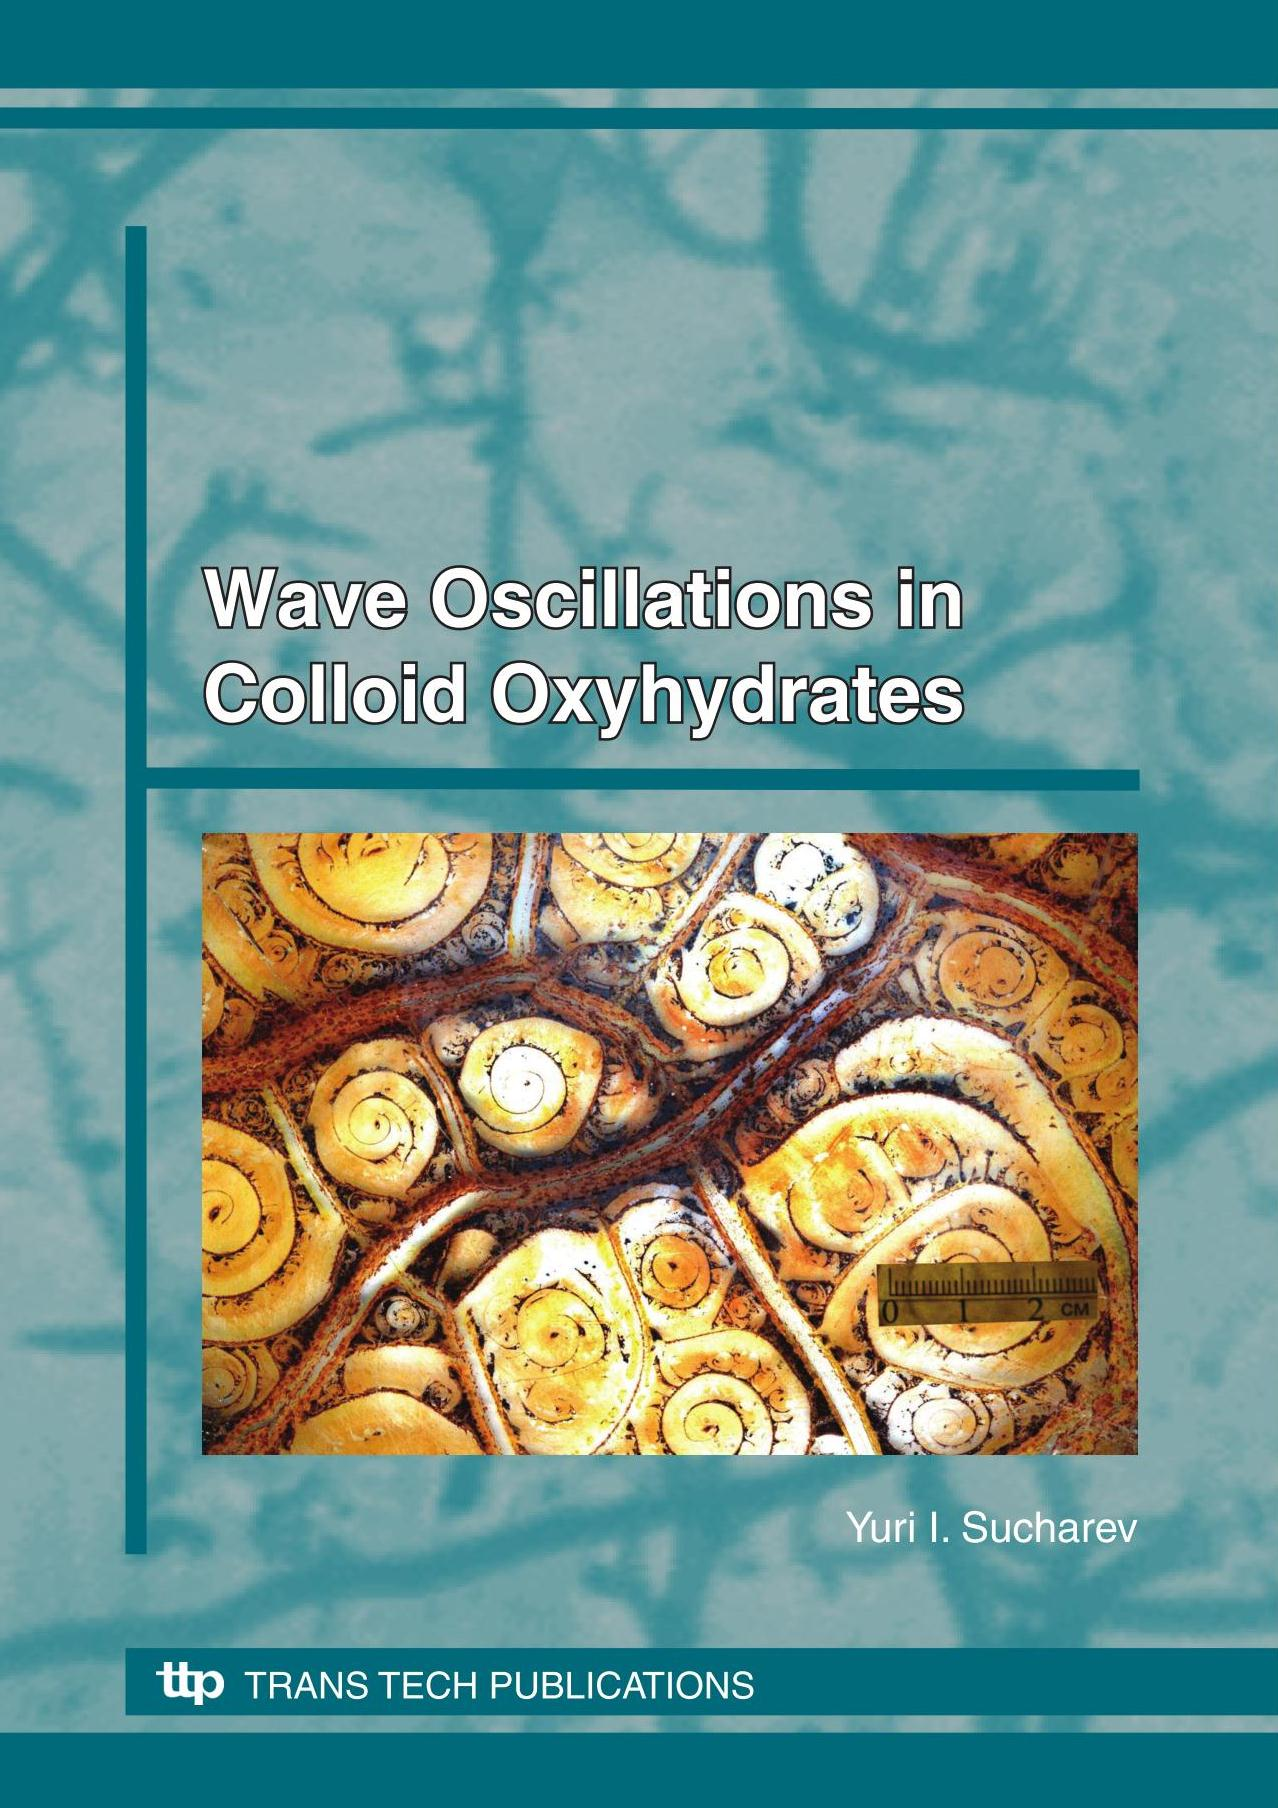 Wave Oscillations in Colloid Oxyhydrates